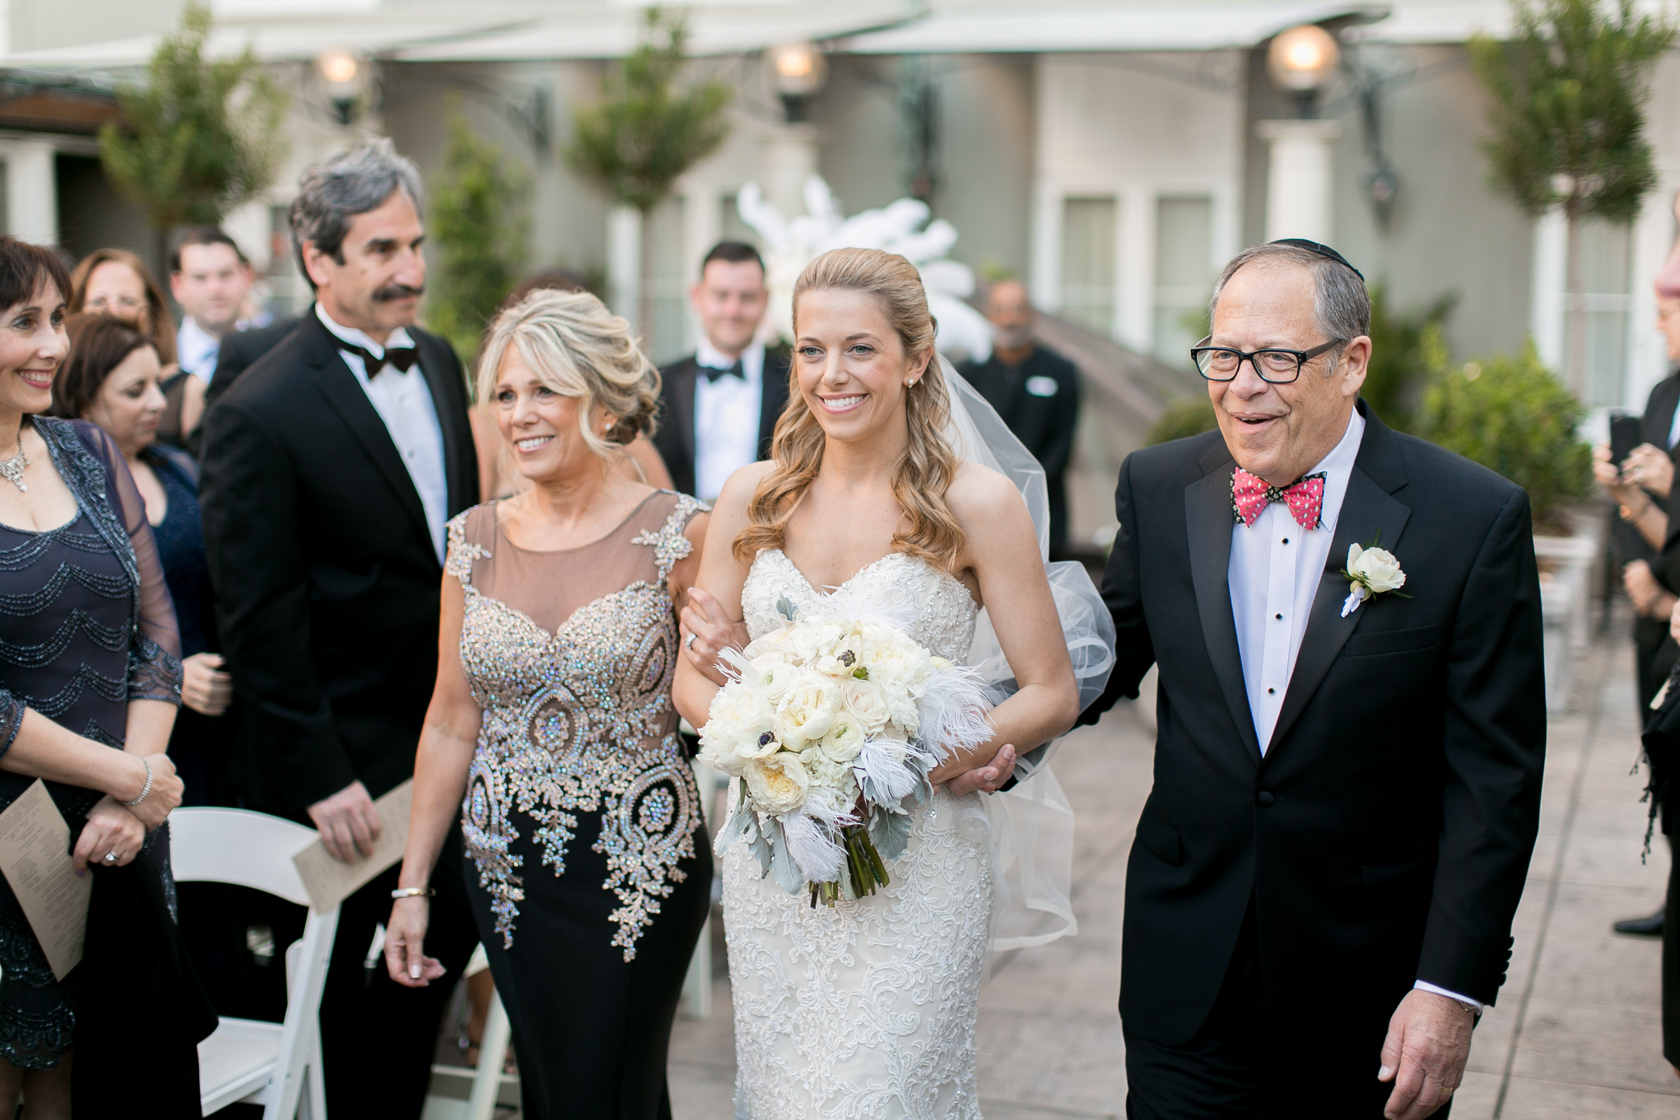 omni royal orleans courtyard wedding ceremony